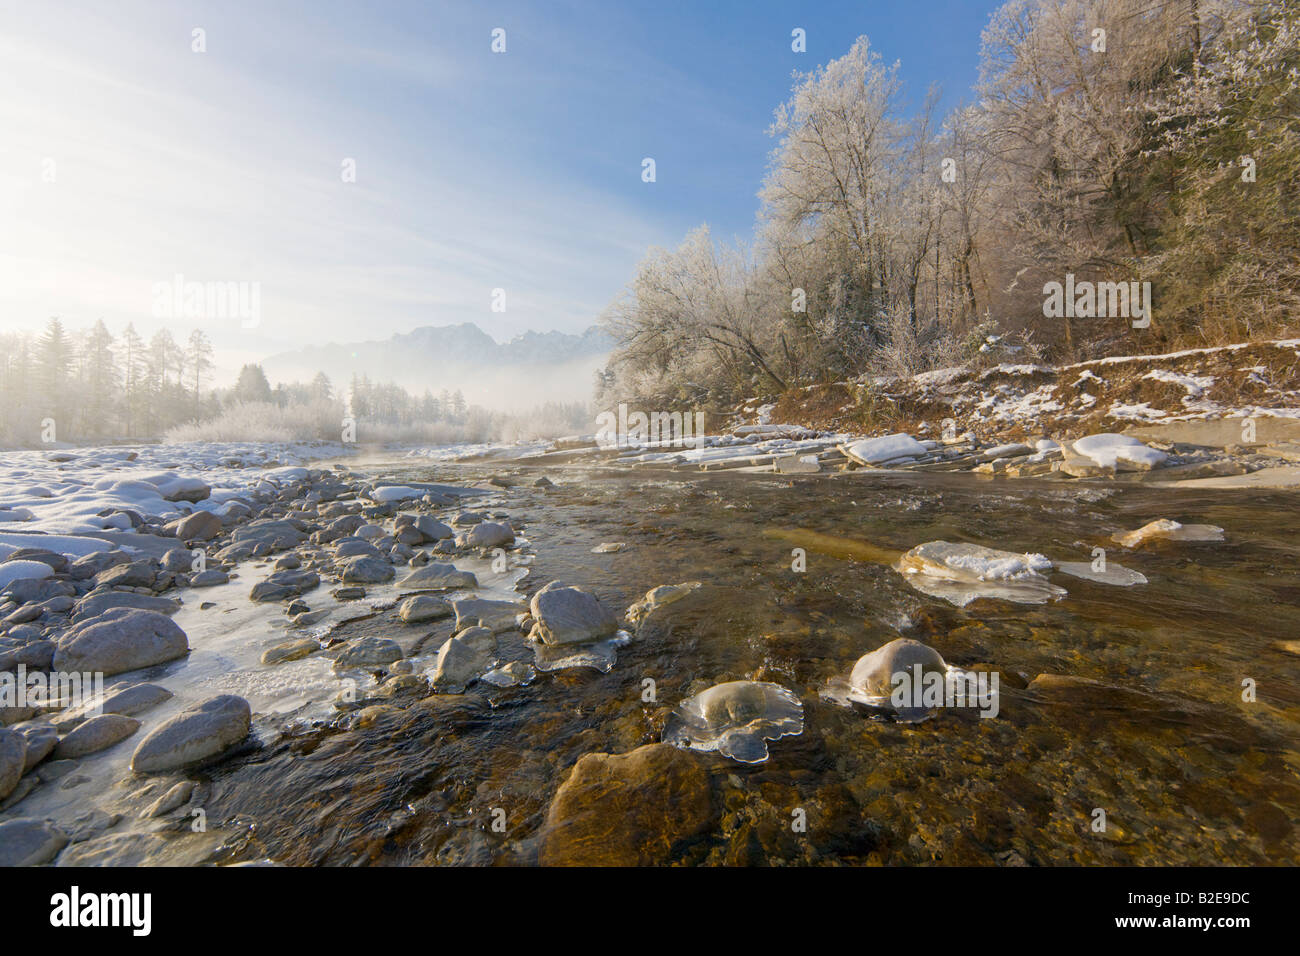 River flowing through forest, Taugl, Hoher Goell, Tennengau, Berchtesgaden Alps, Salzburg, Austria Stock Photo